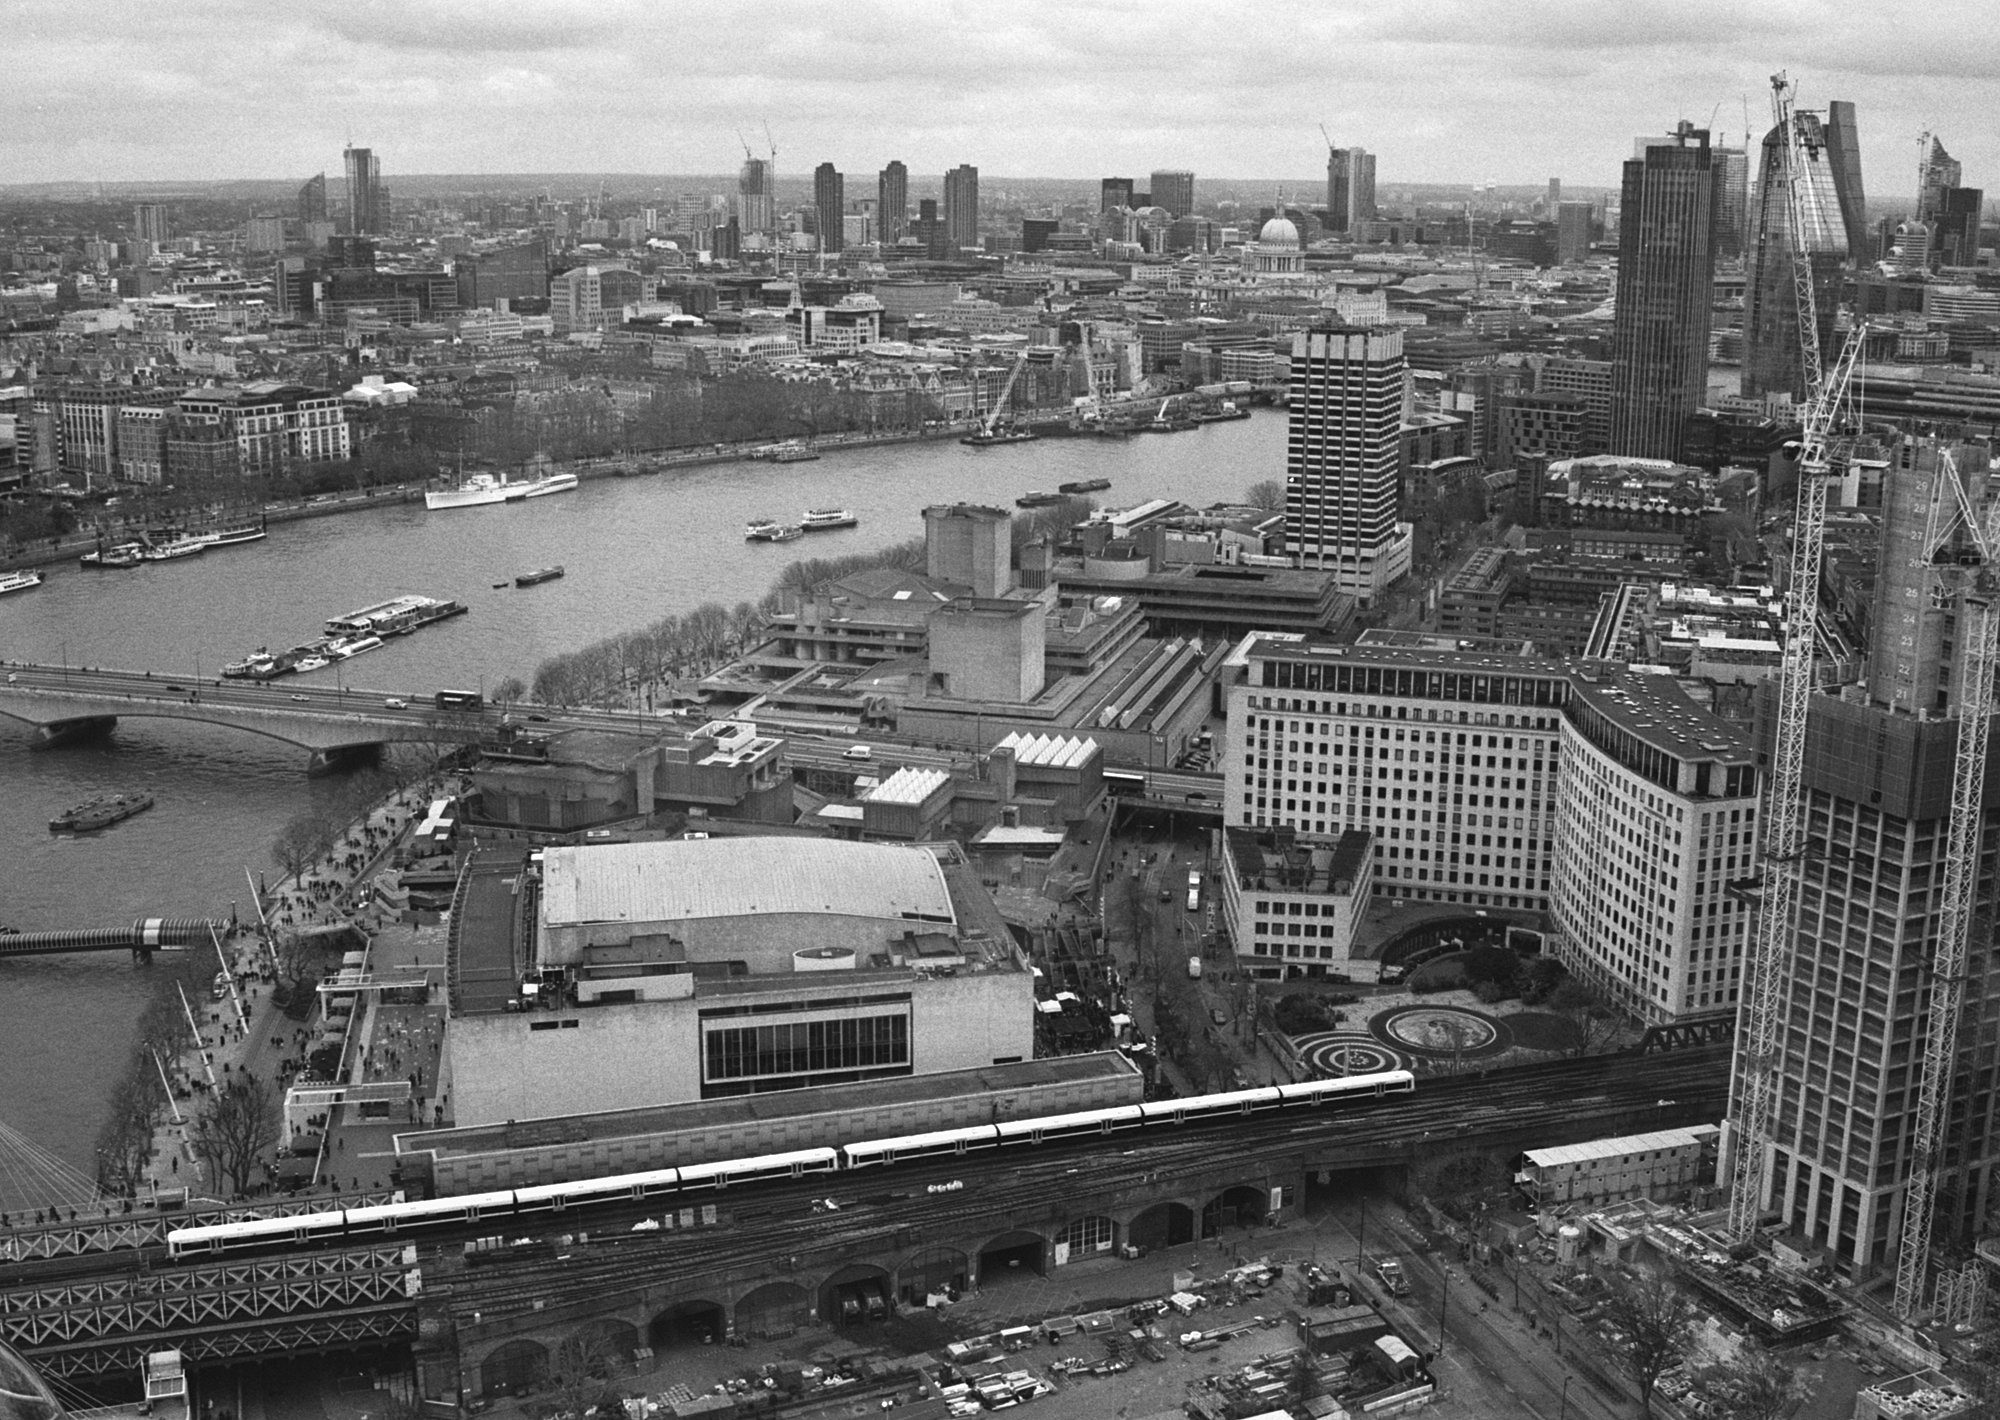 David Henderson @atlantean526 · Dec 2 Replying to @ILFORDPhoto Looking across the South Bank towards the city of London from the London Eye, with the National Theatre in the foreground. London, 18.2.18 Minolta 7000i/ 35-70mm f4 zoom lens @ILFORDPhoto Delta 400/ ID-11. #ilfordphoto #fridayfavourites #sightseeing